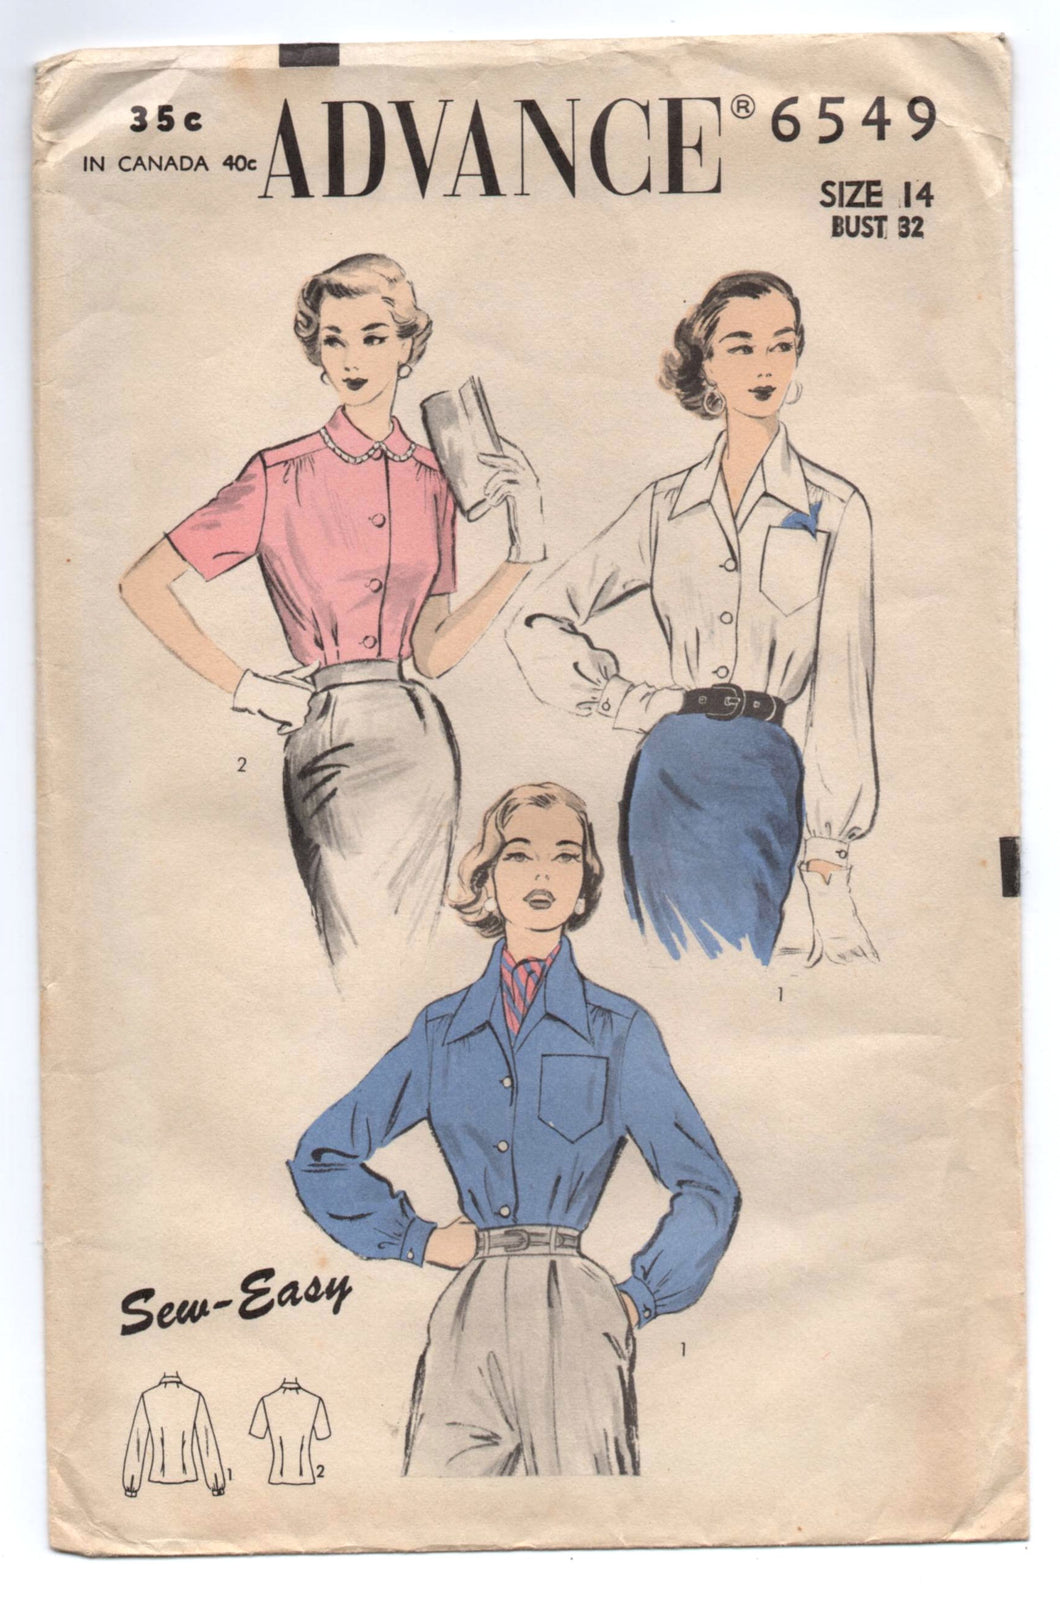 1950's Advance Button Up Blouse Pattern with Wide or Peter pan Collar - Bust 32